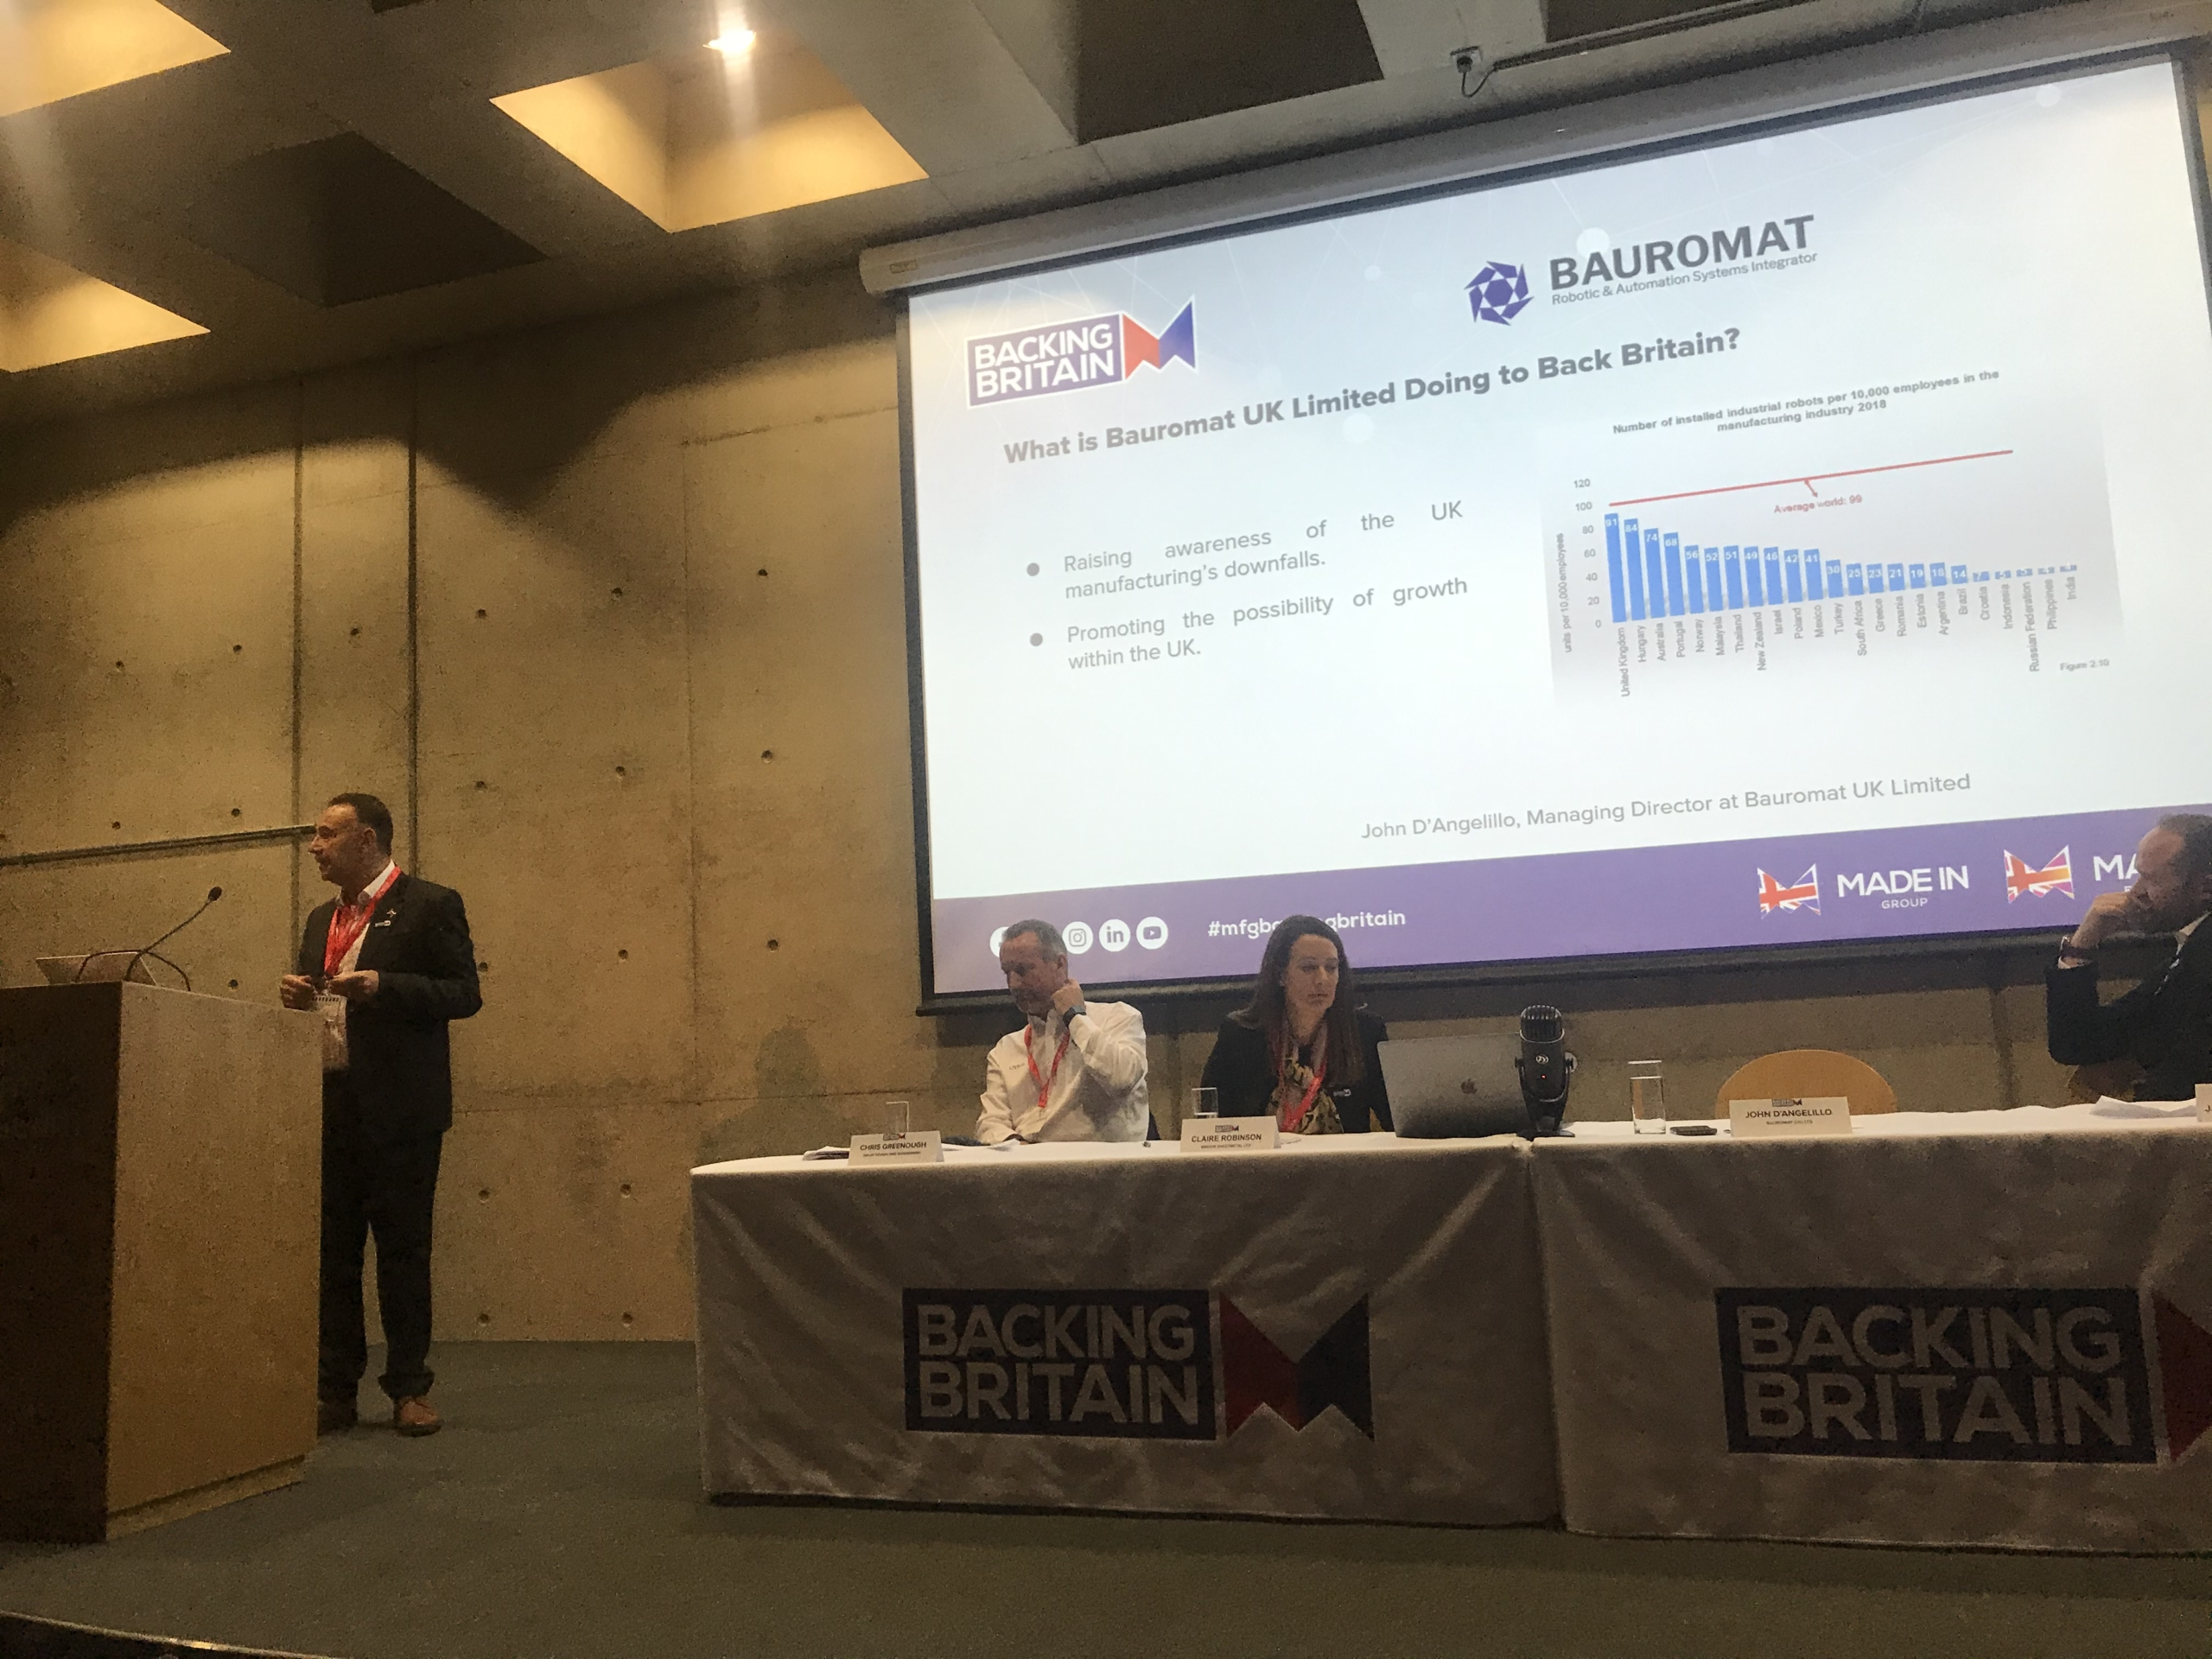 Bauromat's John D'Angelillo giving a talk at the launch of Back Britain